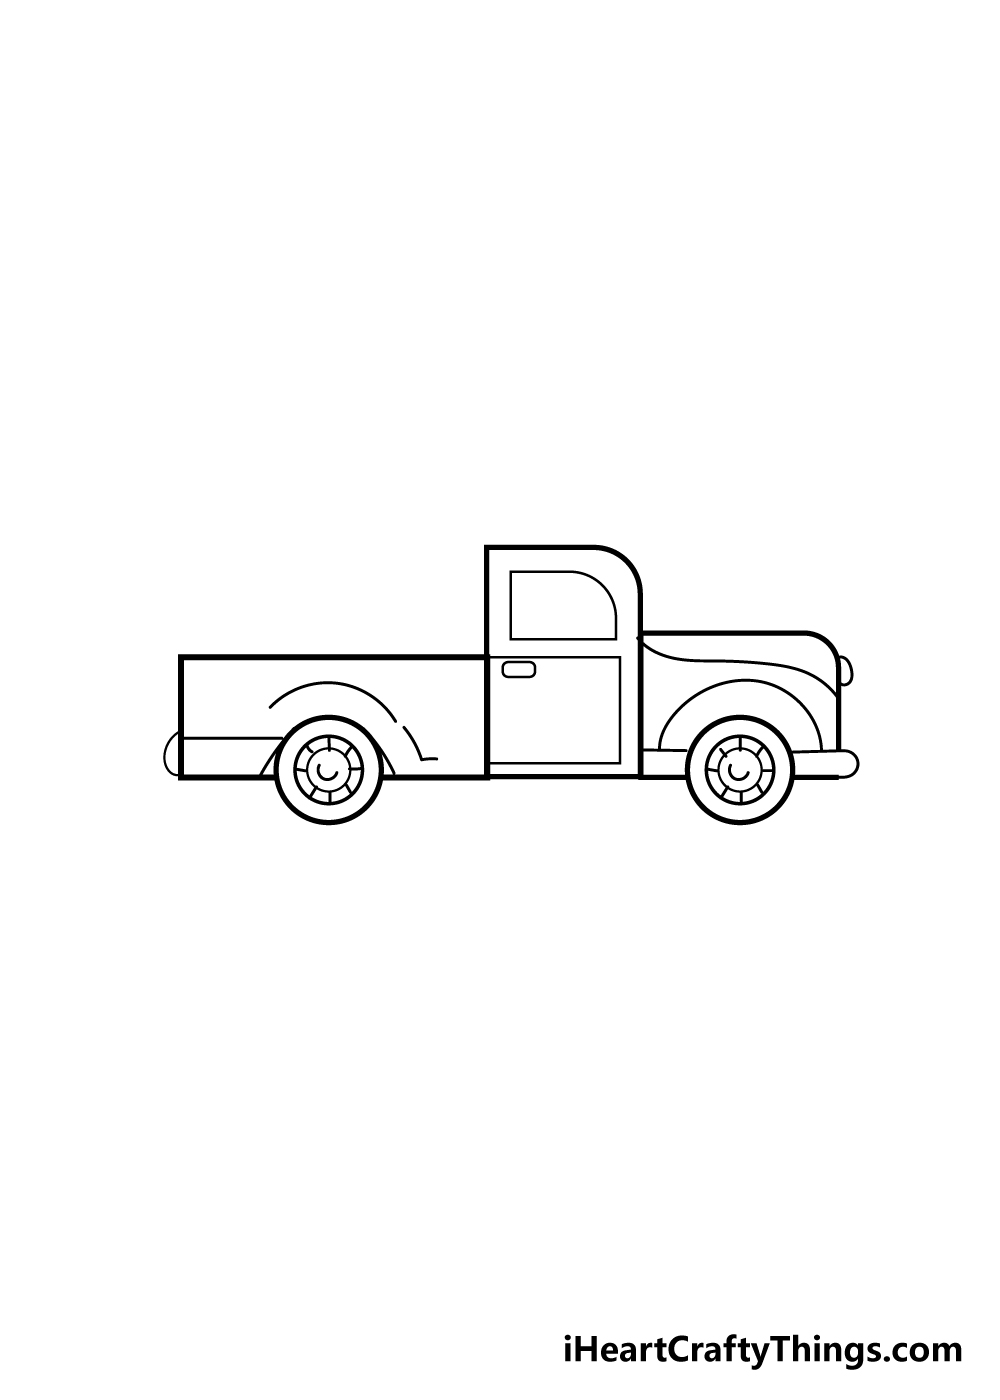 truck drawing step 5